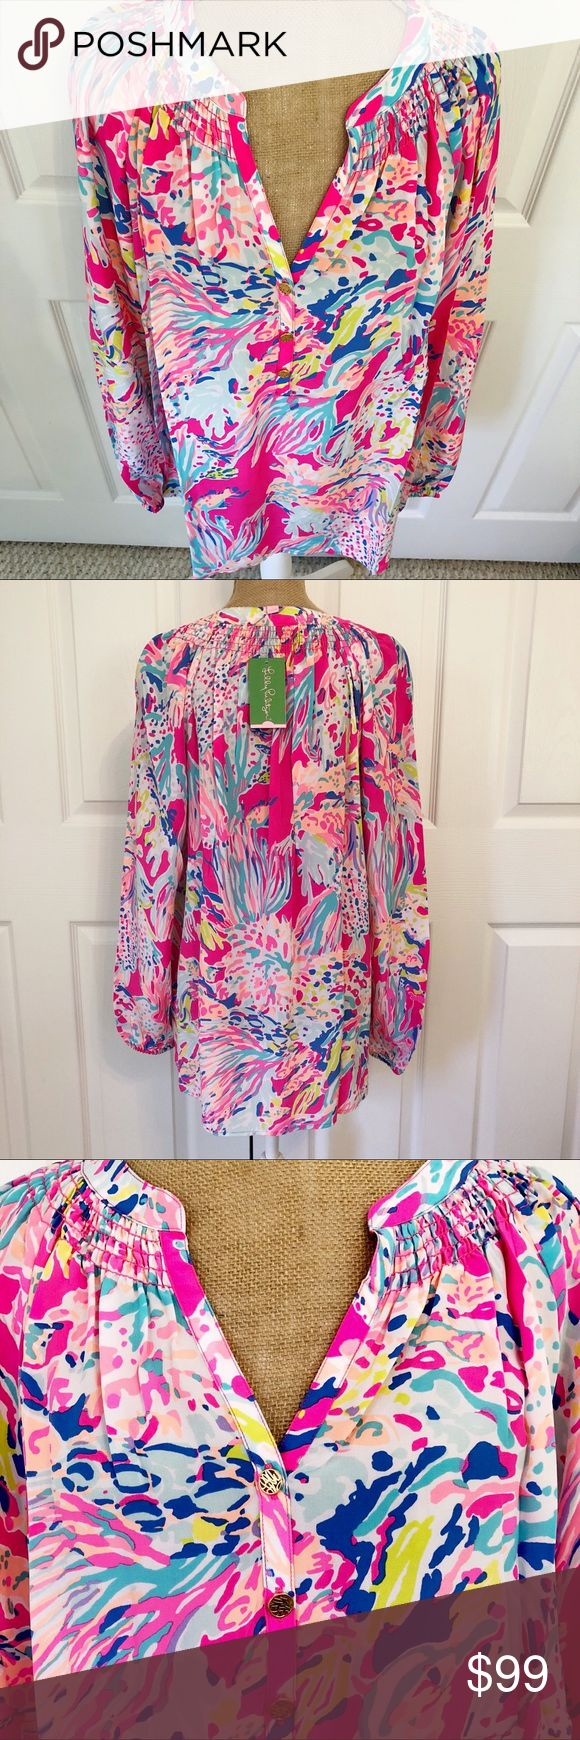 NWT Lilly Pulitzer Silk Elsa Top Sunken Treasure L NWT Lilly Pulitzer 100% silk Elsa Top in Sunken Treasure. Absolutely gorgeous colors in this one - love the hints of lavender. 💜 Elsa tops are a Lilly staple and perennial favorite. 100% silk so you can wear them year round, even in the hot summer. Tucked in or worn out, elastic sleeves pushed up or left long, loose & flowy or add a belt, colorful peek out from under a blazer, wear with skinny jeans, dress pants or a pencil skirt - a true…